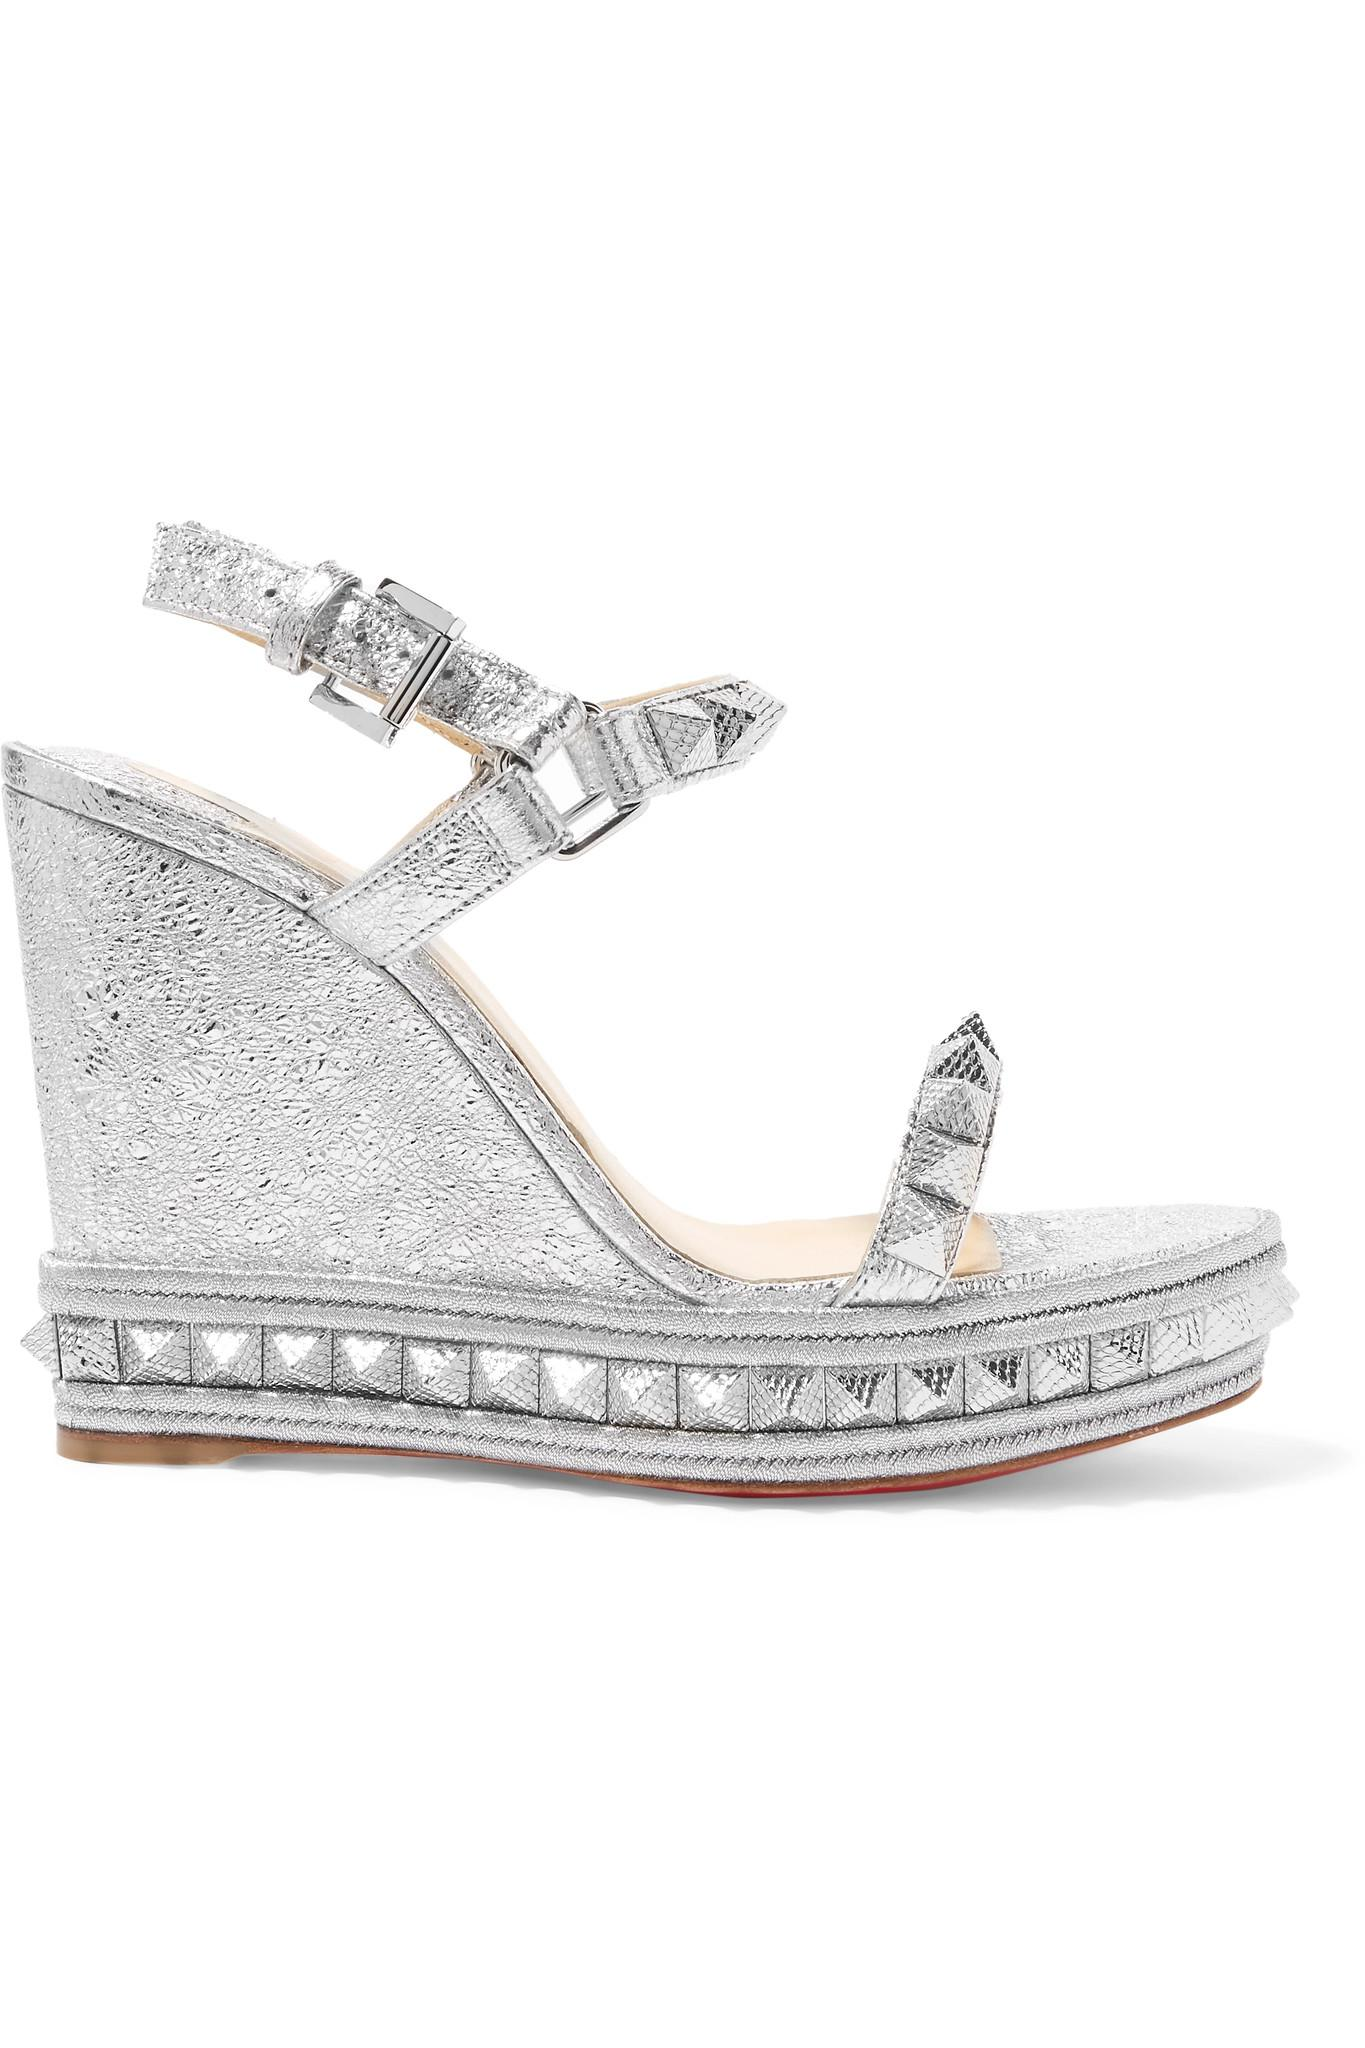 f6bc4031e15a Christian Louboutin. Women s Pyraclou 110 Spiked Metallic Textured-leather  Wedge Sandals